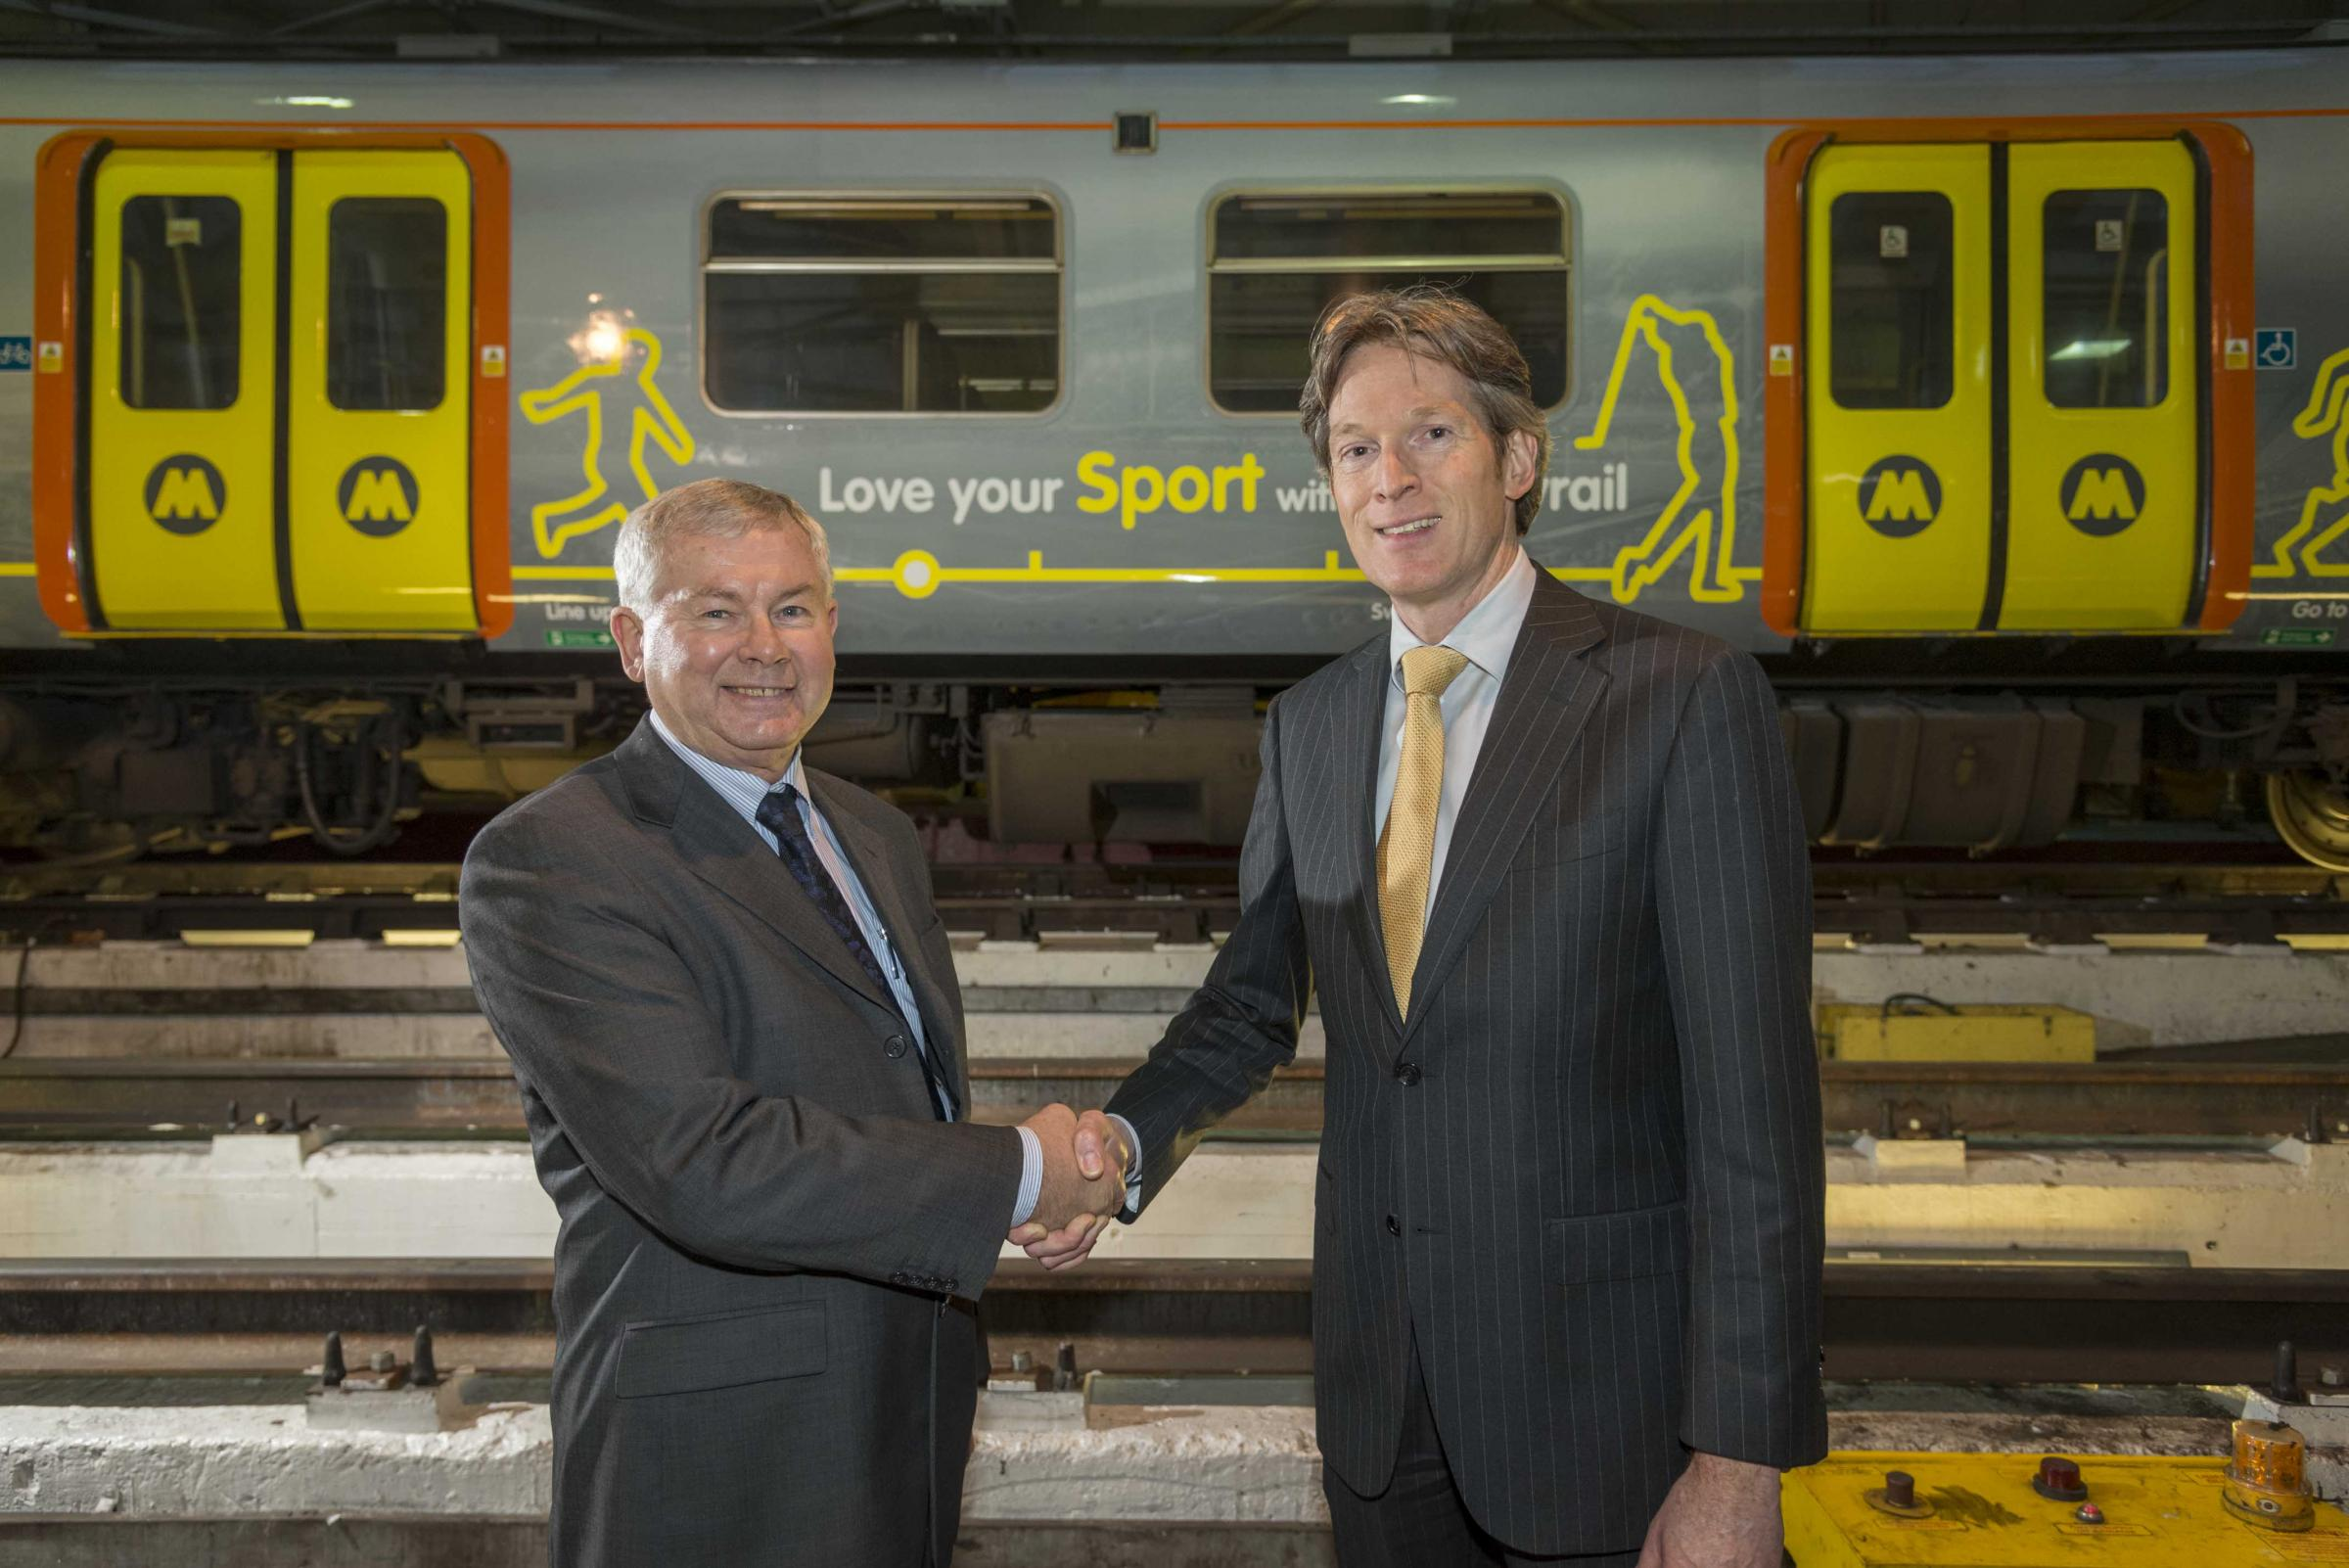 Fresher and brighter image for Merseyrail fleet